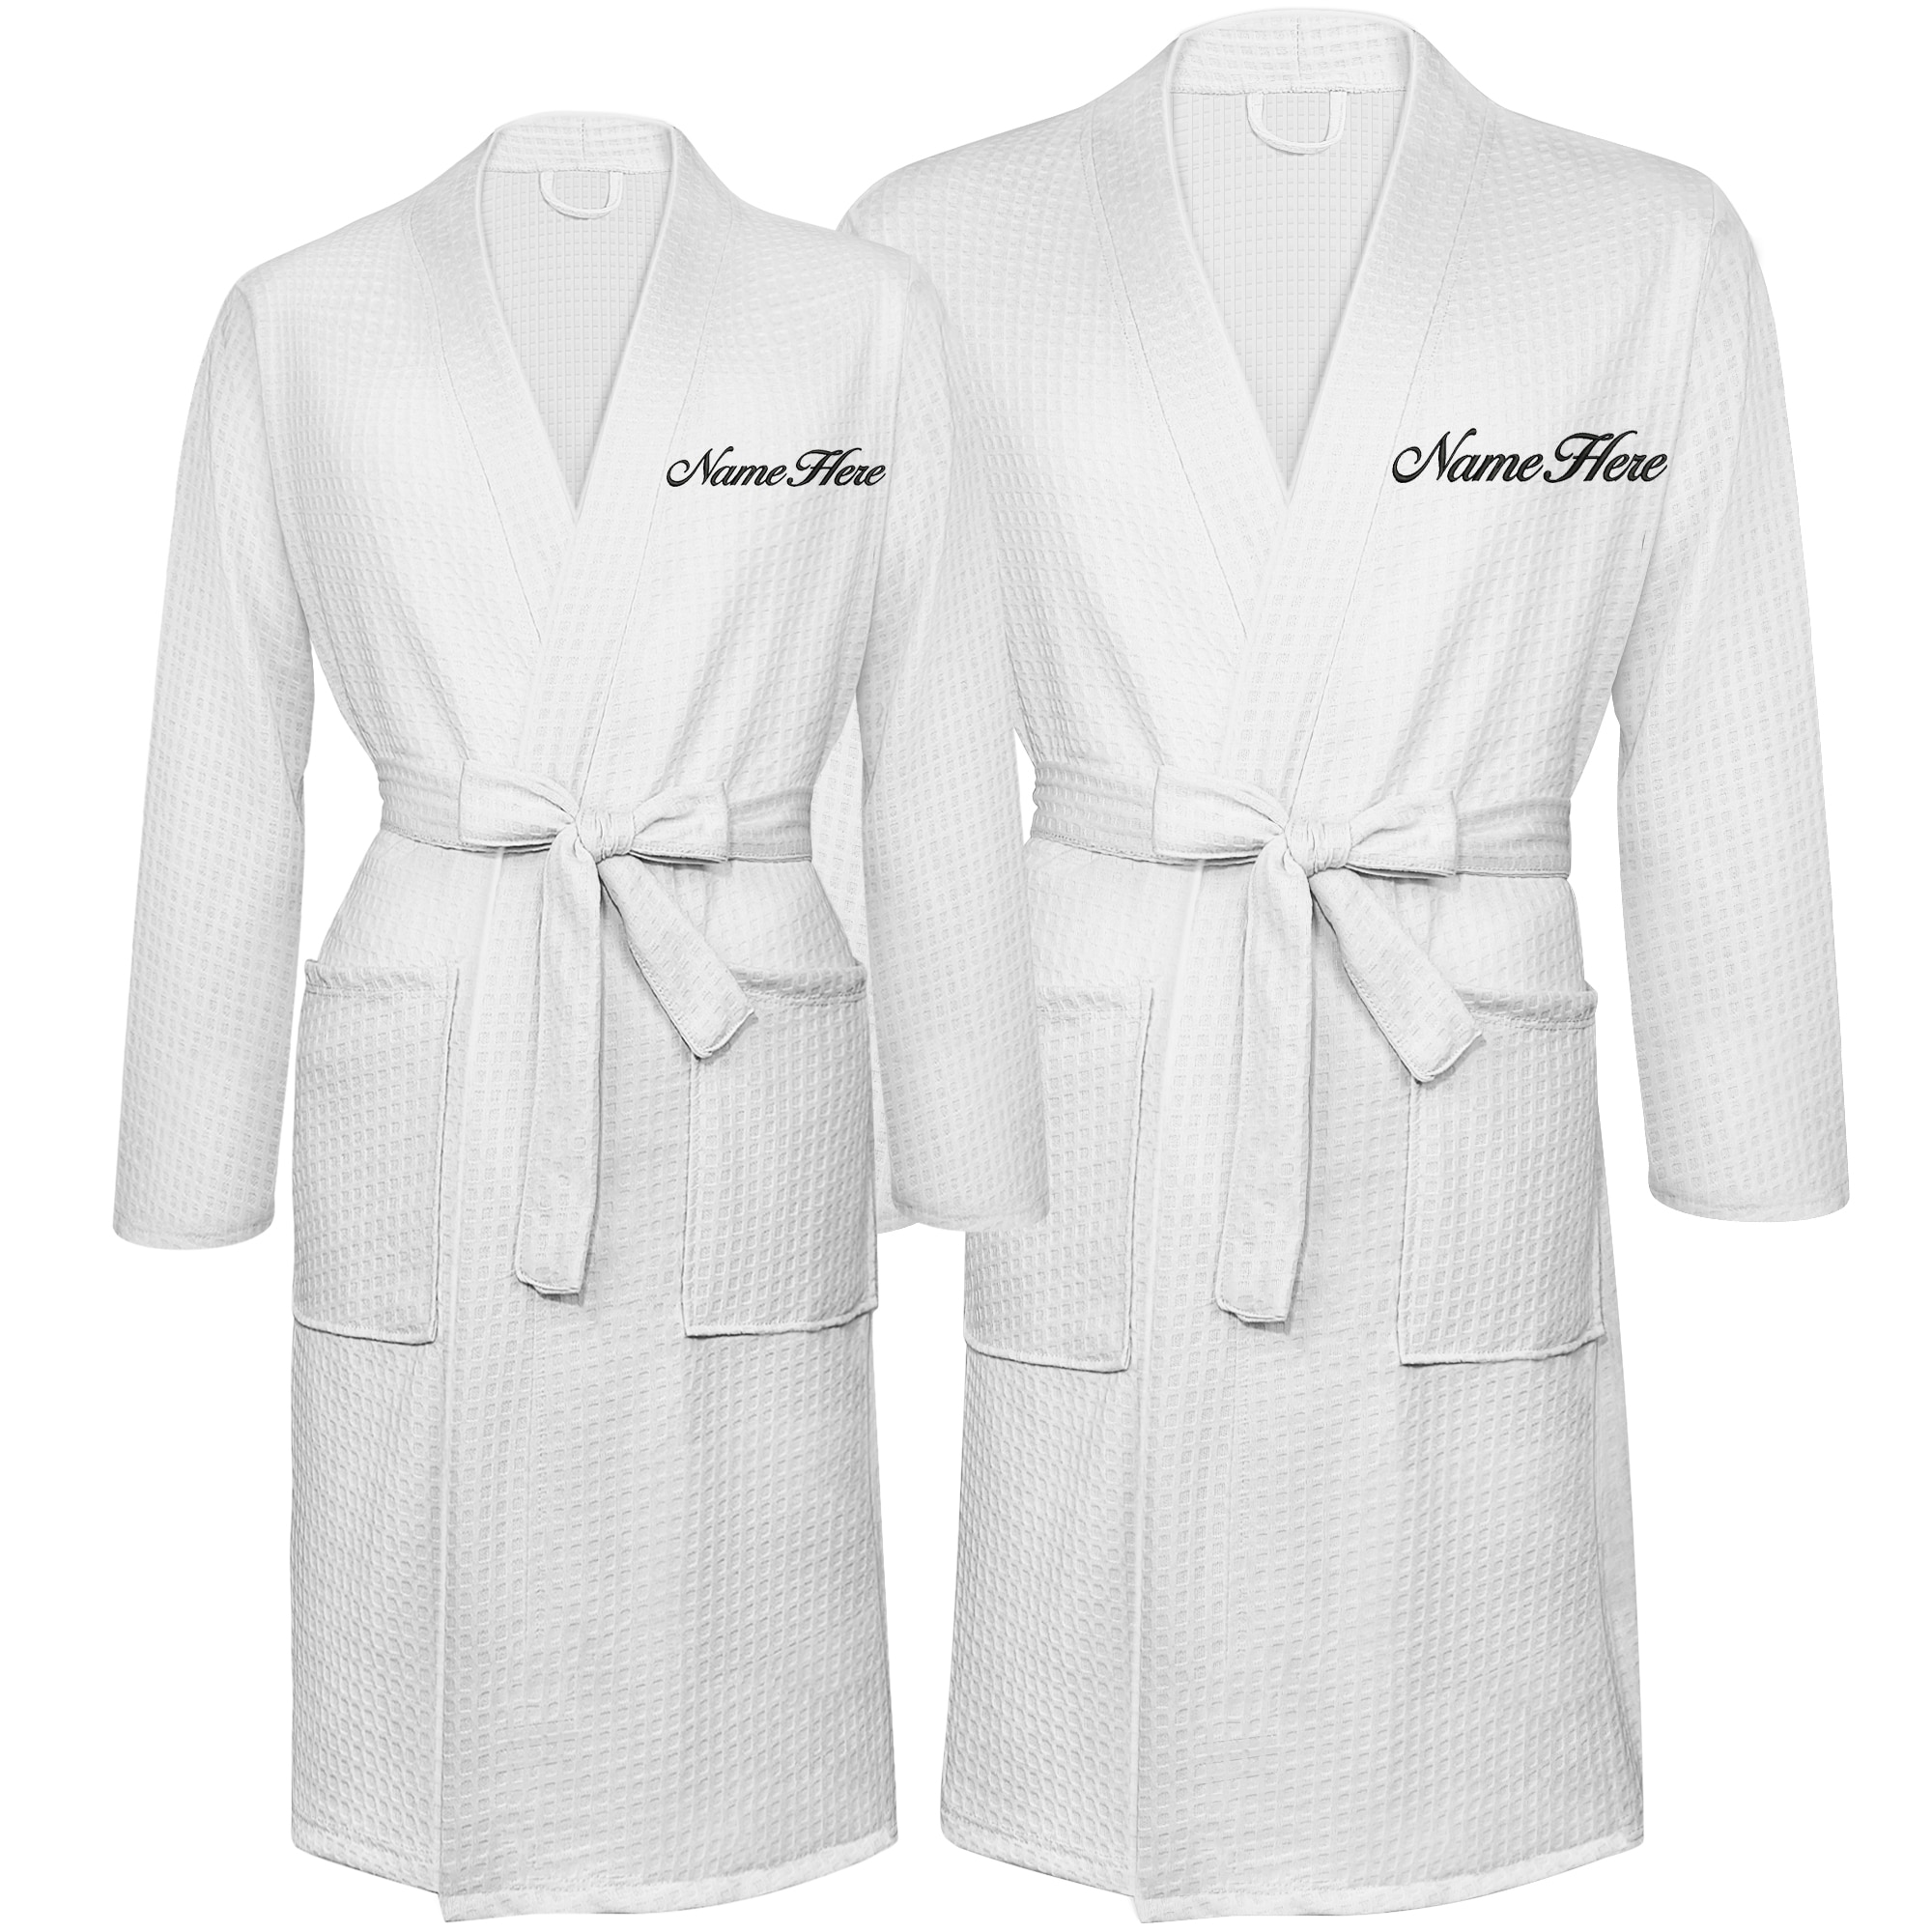 Custom Robes Monogrammed Bathrobes Set 2Pcs Personalized Embroidered Waffle Robes with Names for Couples